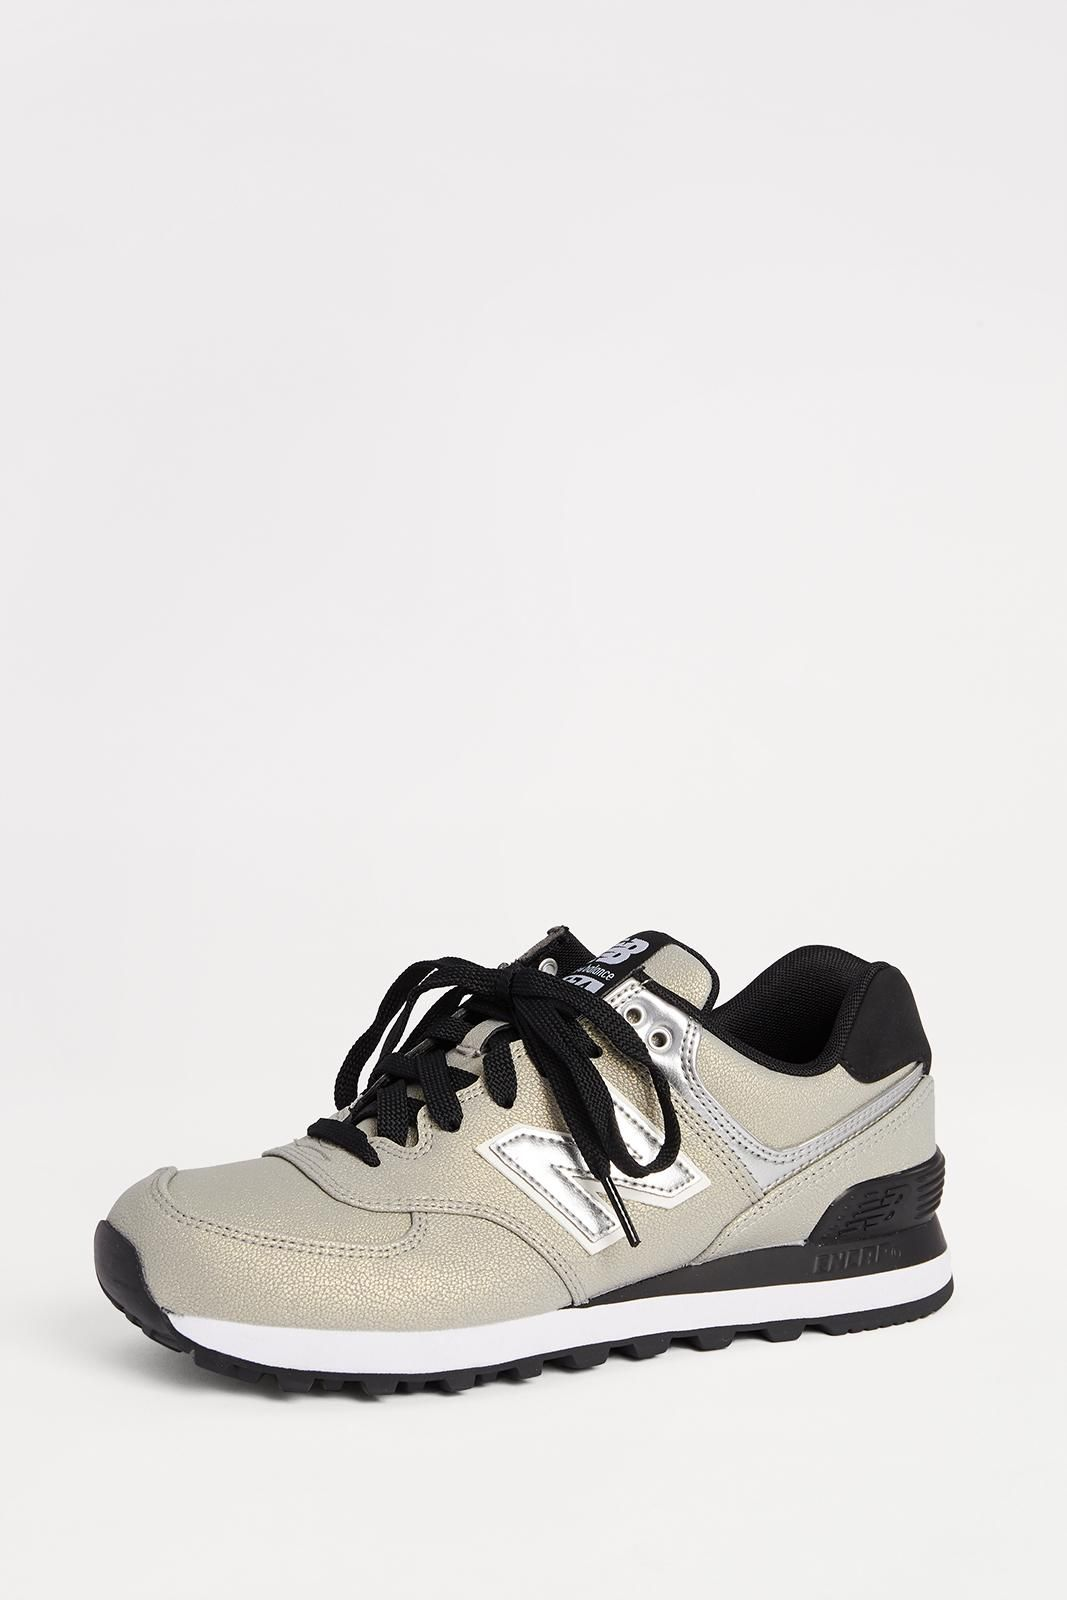 NEW BALANCE 574 Shimmer Sneaker   Sneakers, Shoes, Shimmer